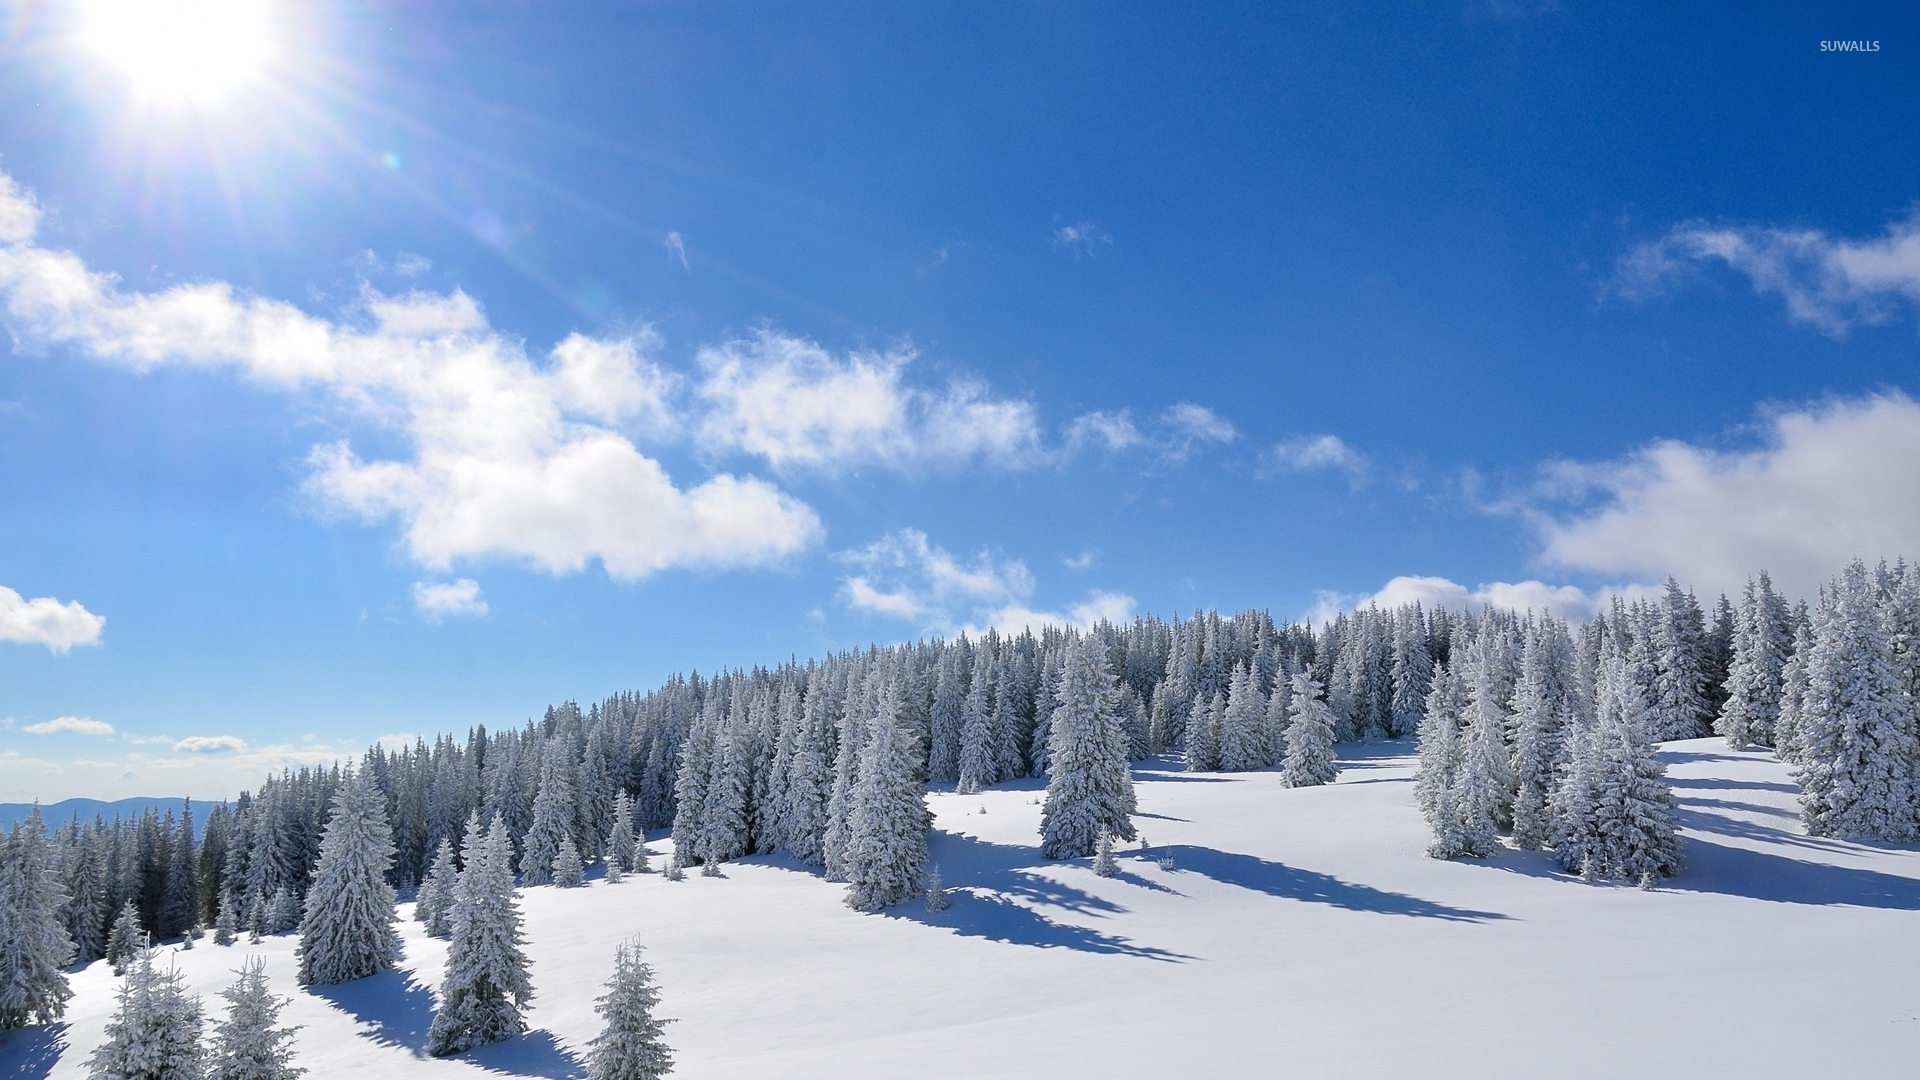 Amazing Bright Sun Over The Snowy Forest Wallpaper Nature